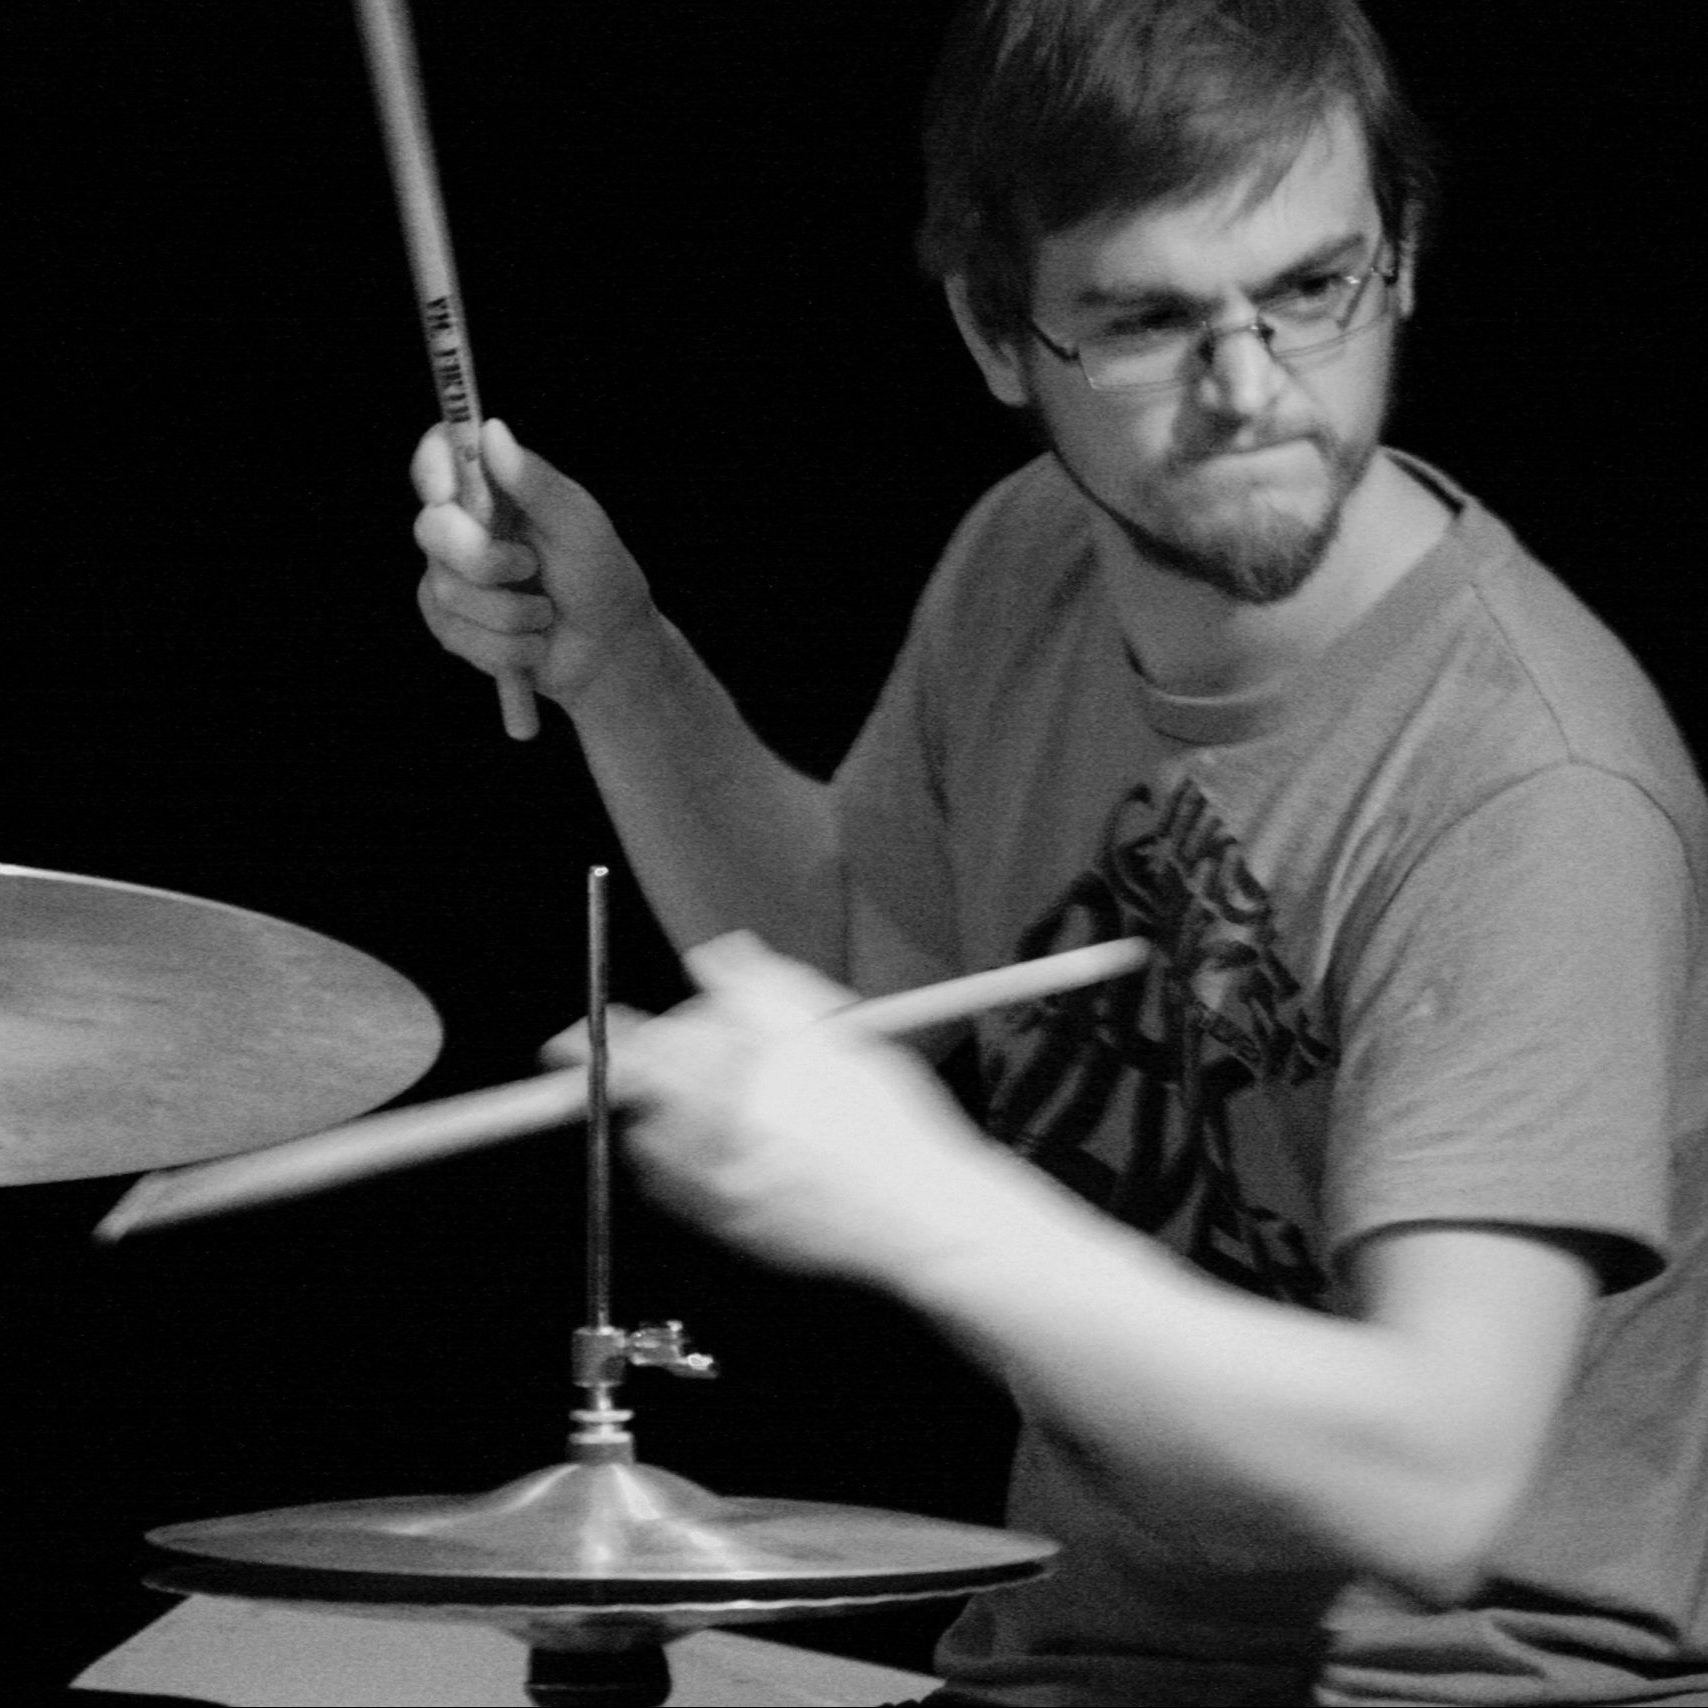 Johnny Hunter on the drums